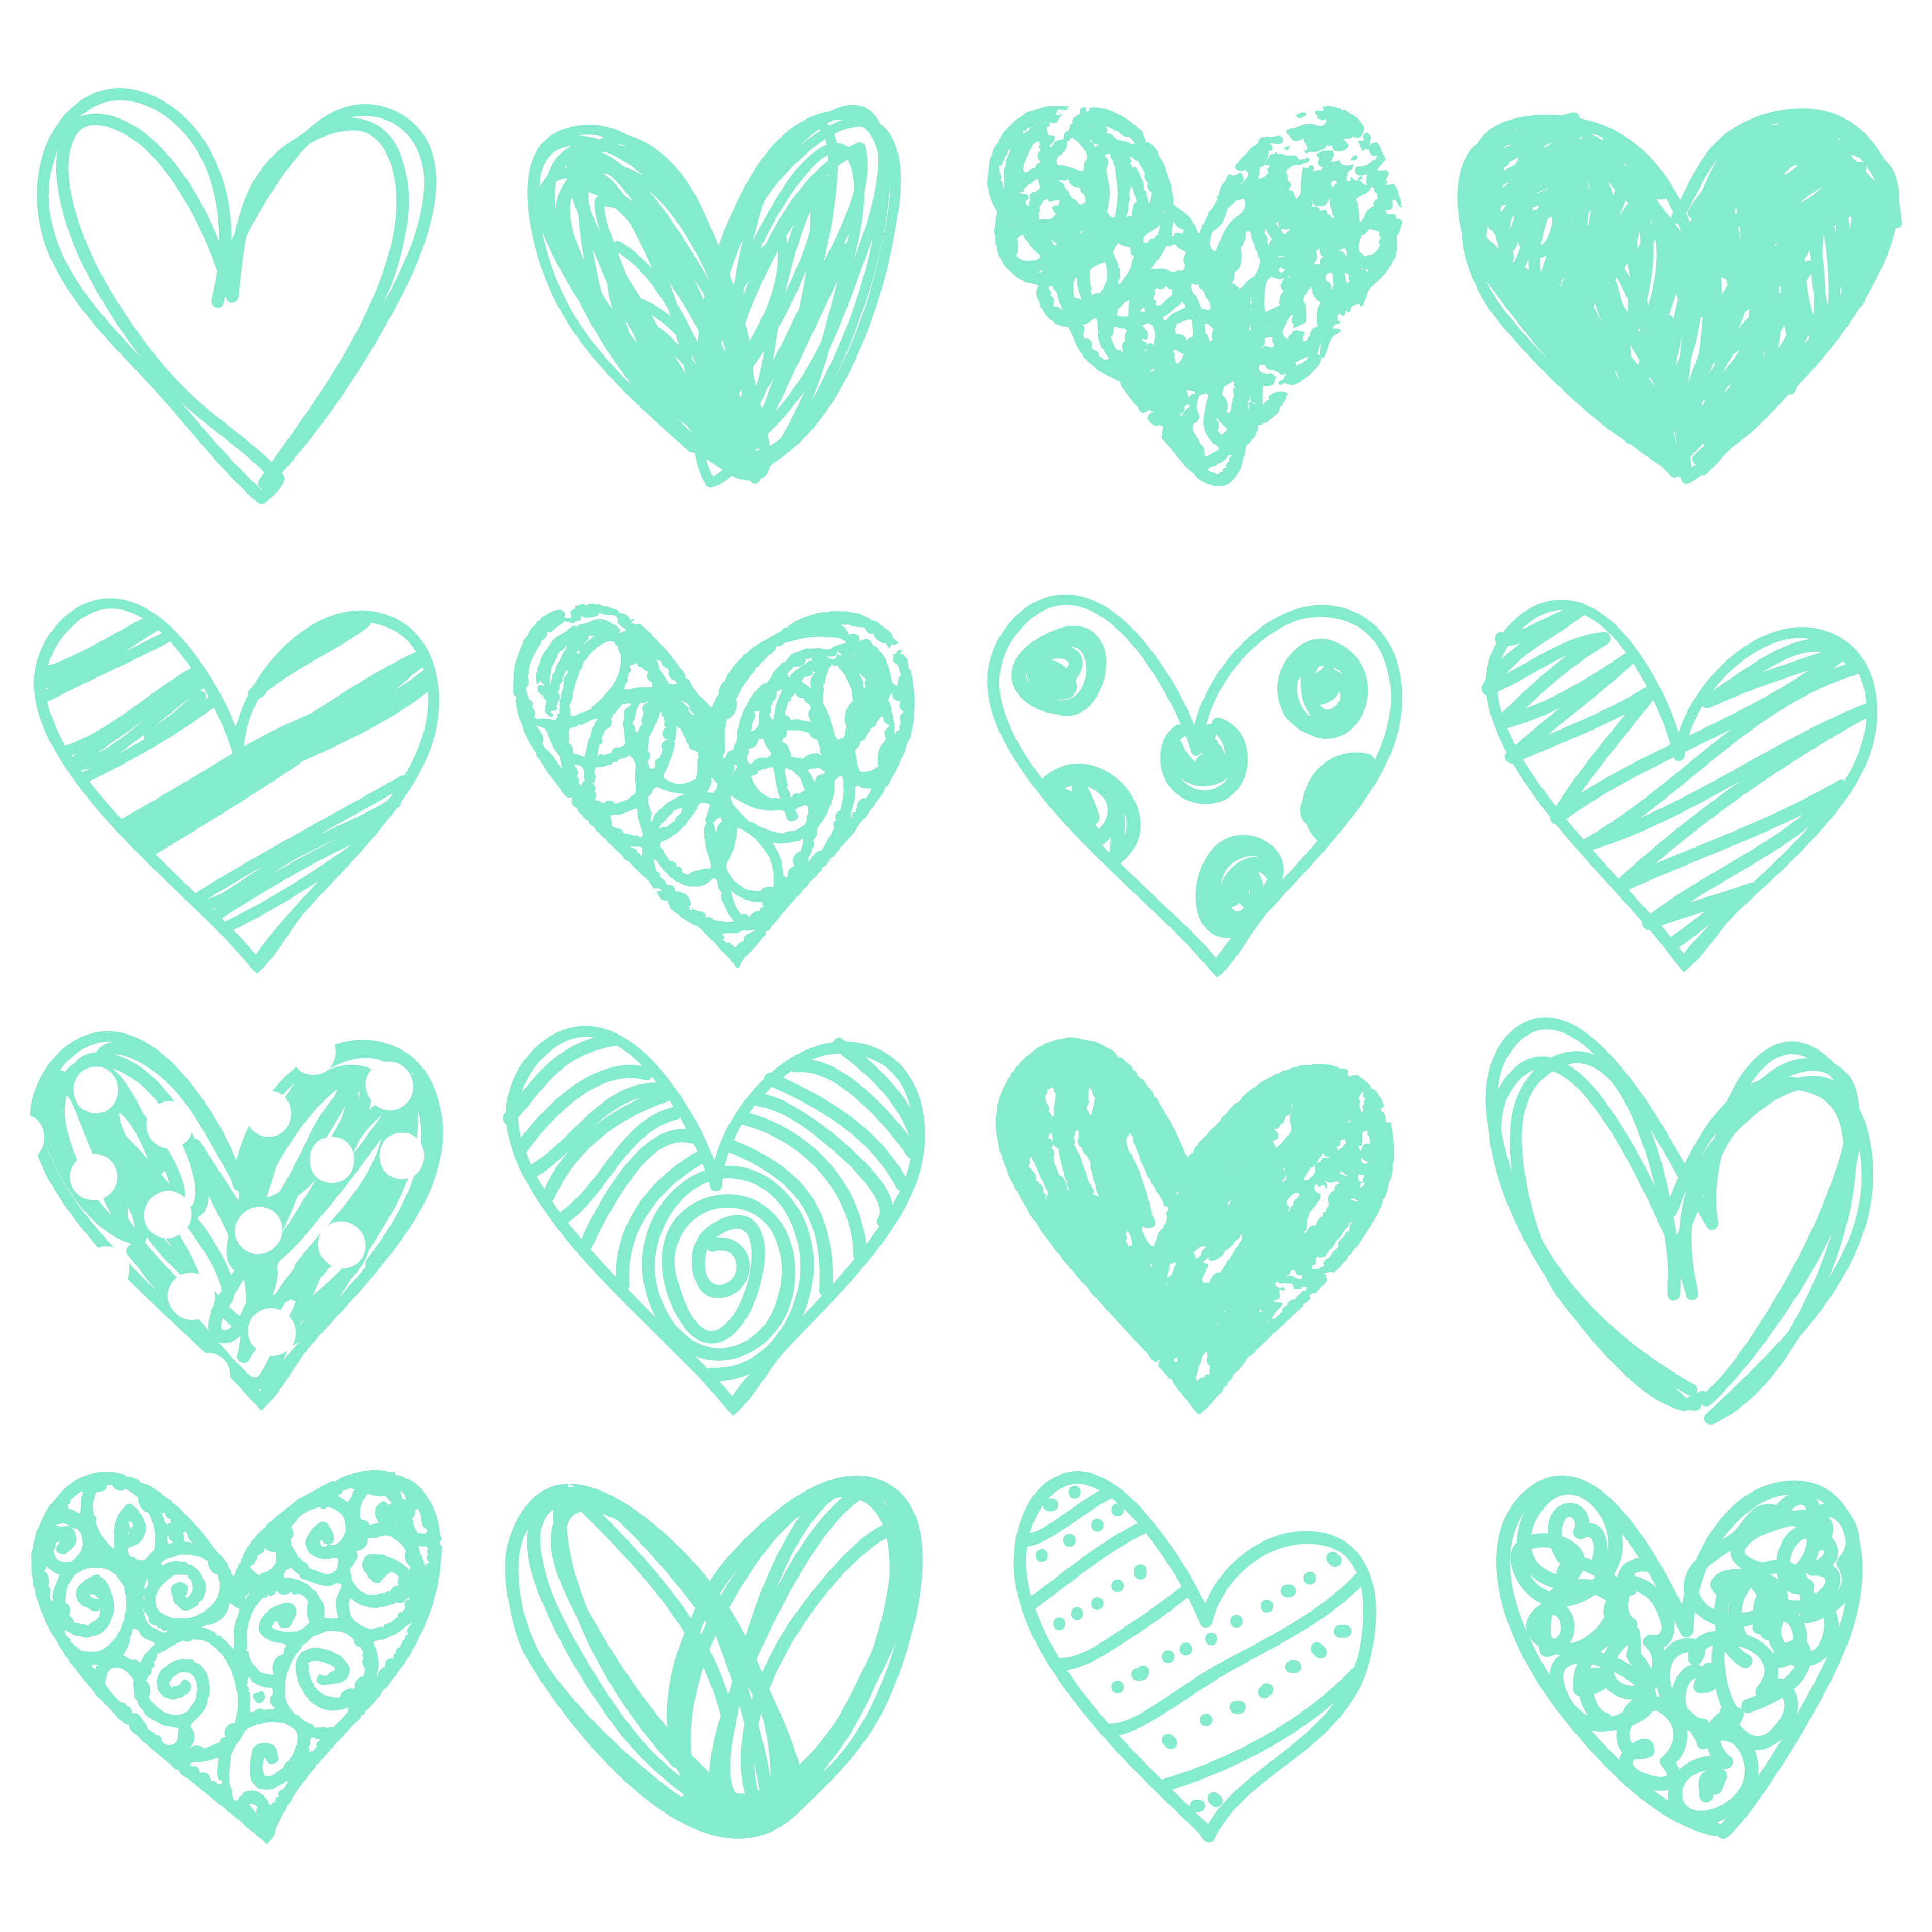 Doodle heart clipart vector freeuse library Free Doodle Heart Clip Art - Free Pretty Things For You vector freeuse library